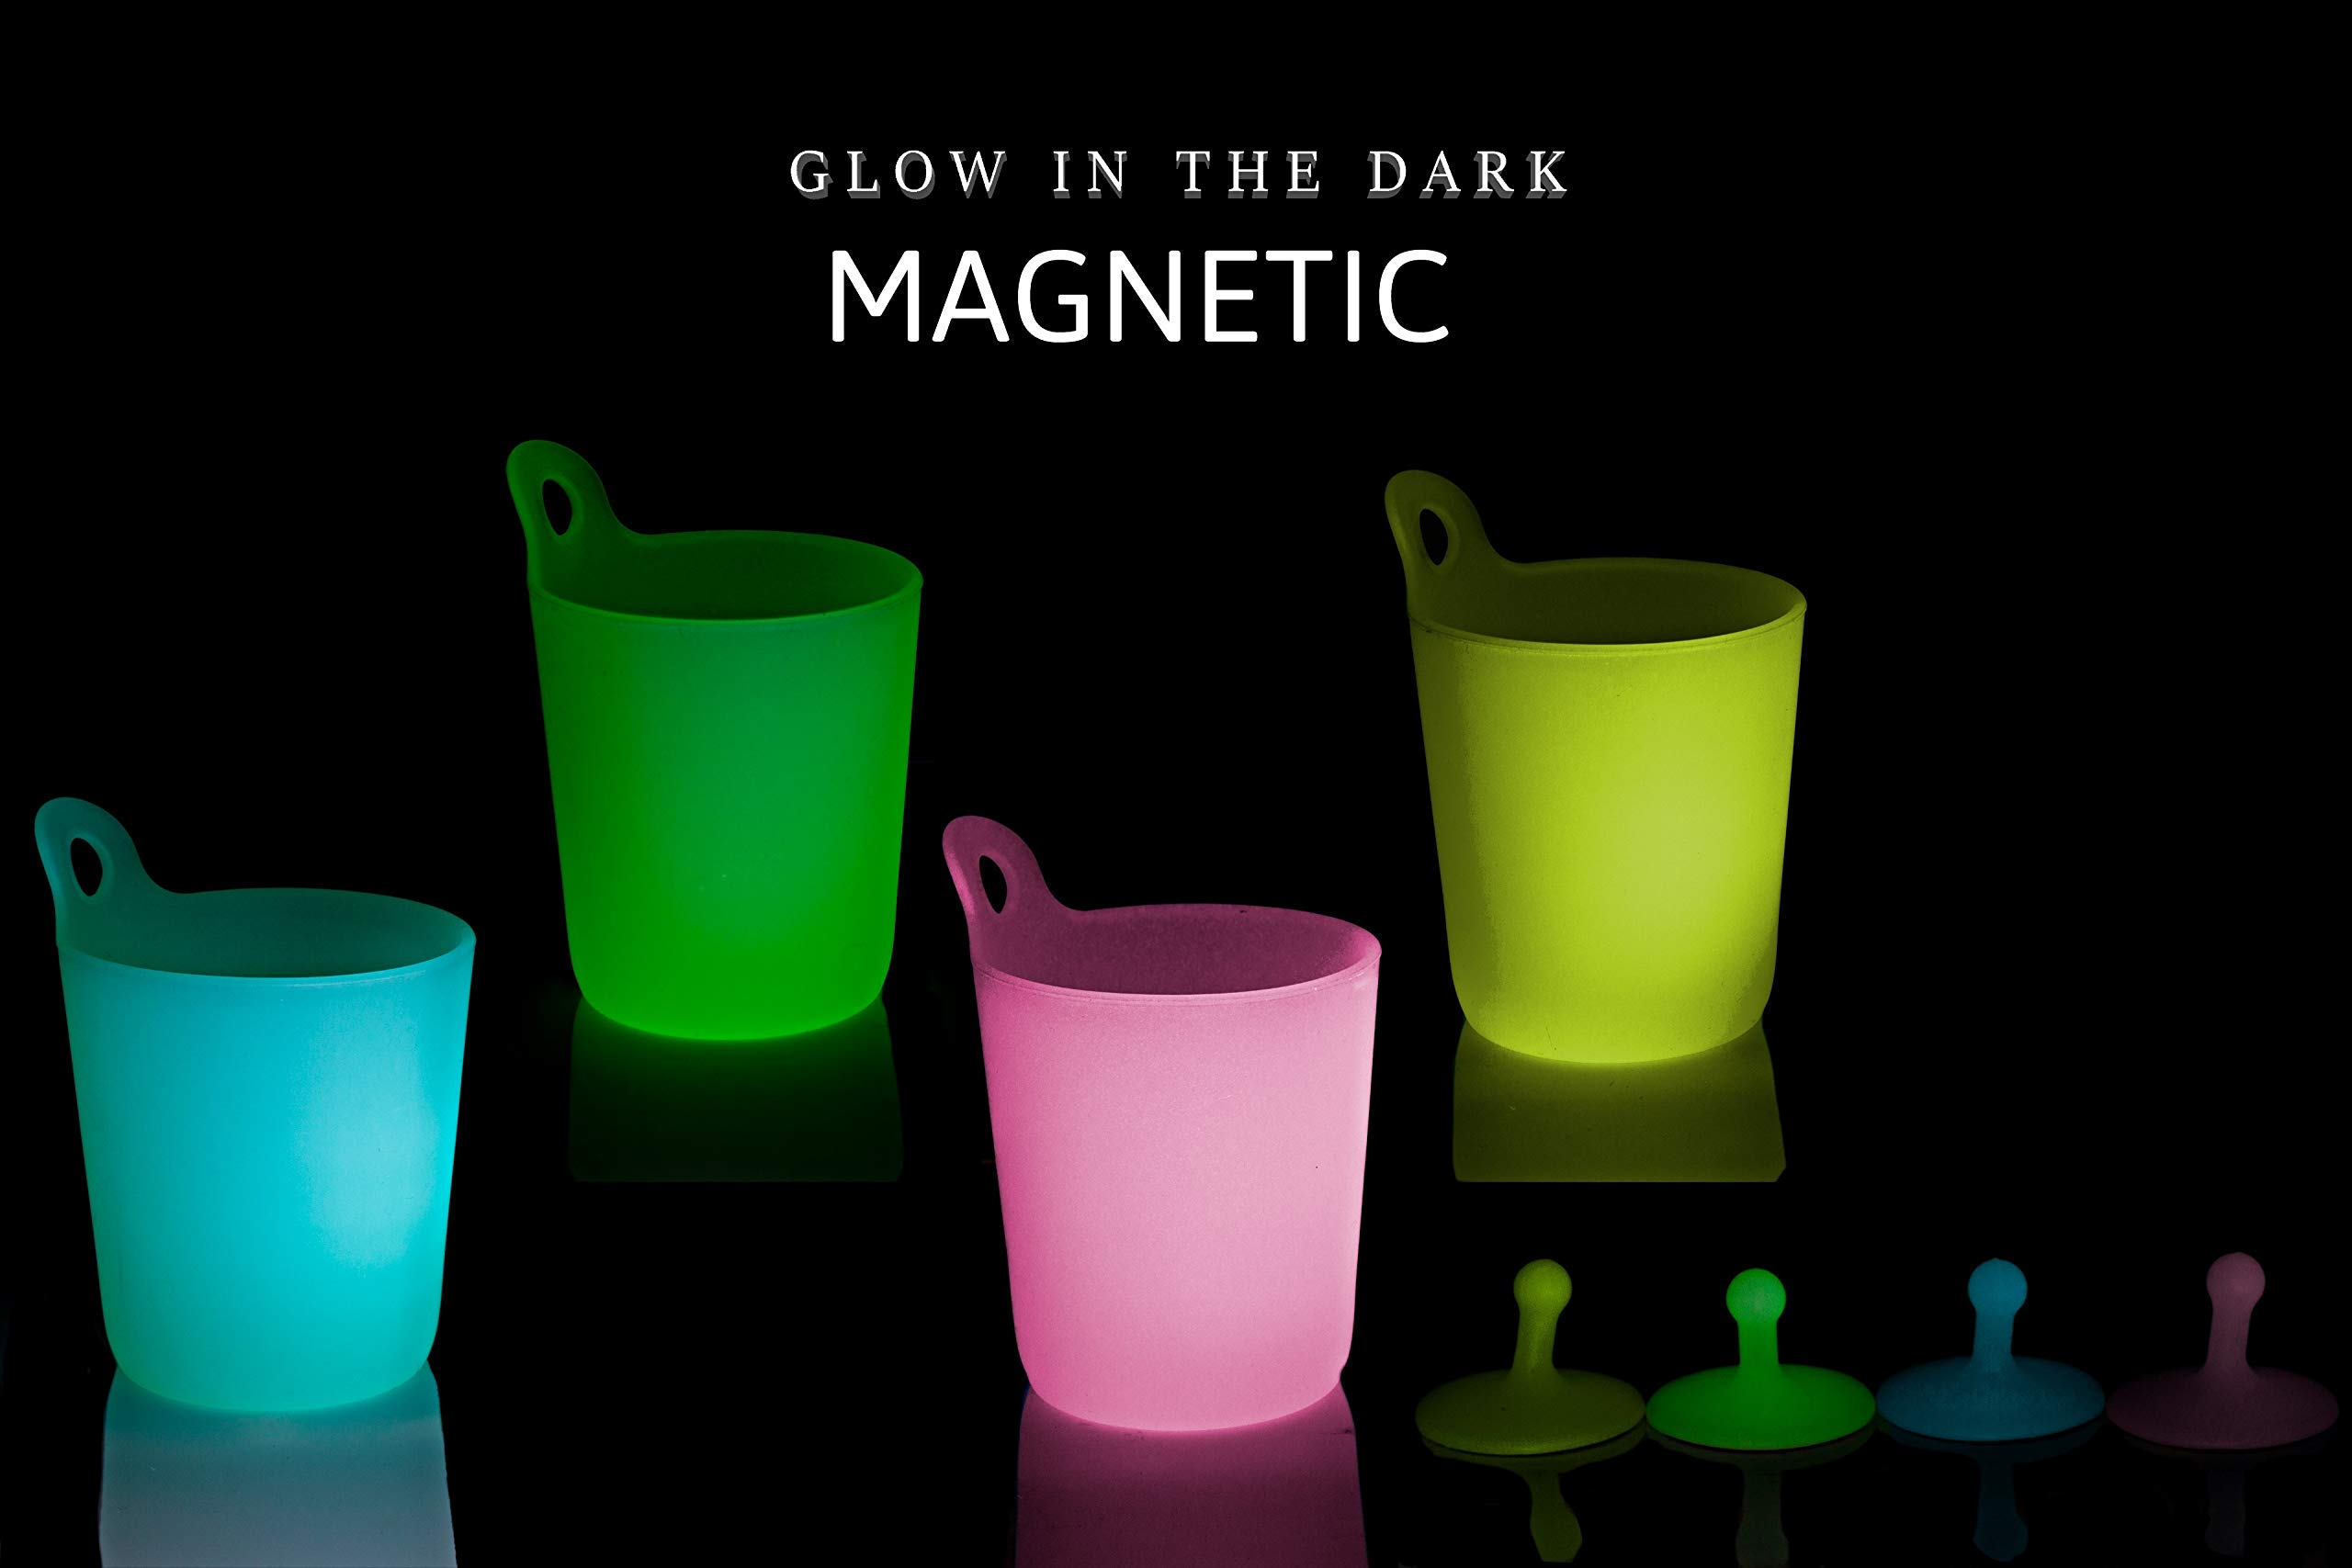 B.N.D TOP Hanging Cups for Kids on Fridge Hangable Kid's Cup Dishwasher Safe Magnetic Fridge Cups for Kids Magnets Drinking Cups hangable Cups for Kids & Adult Glow in The Dark Silicone Magnet Hooks